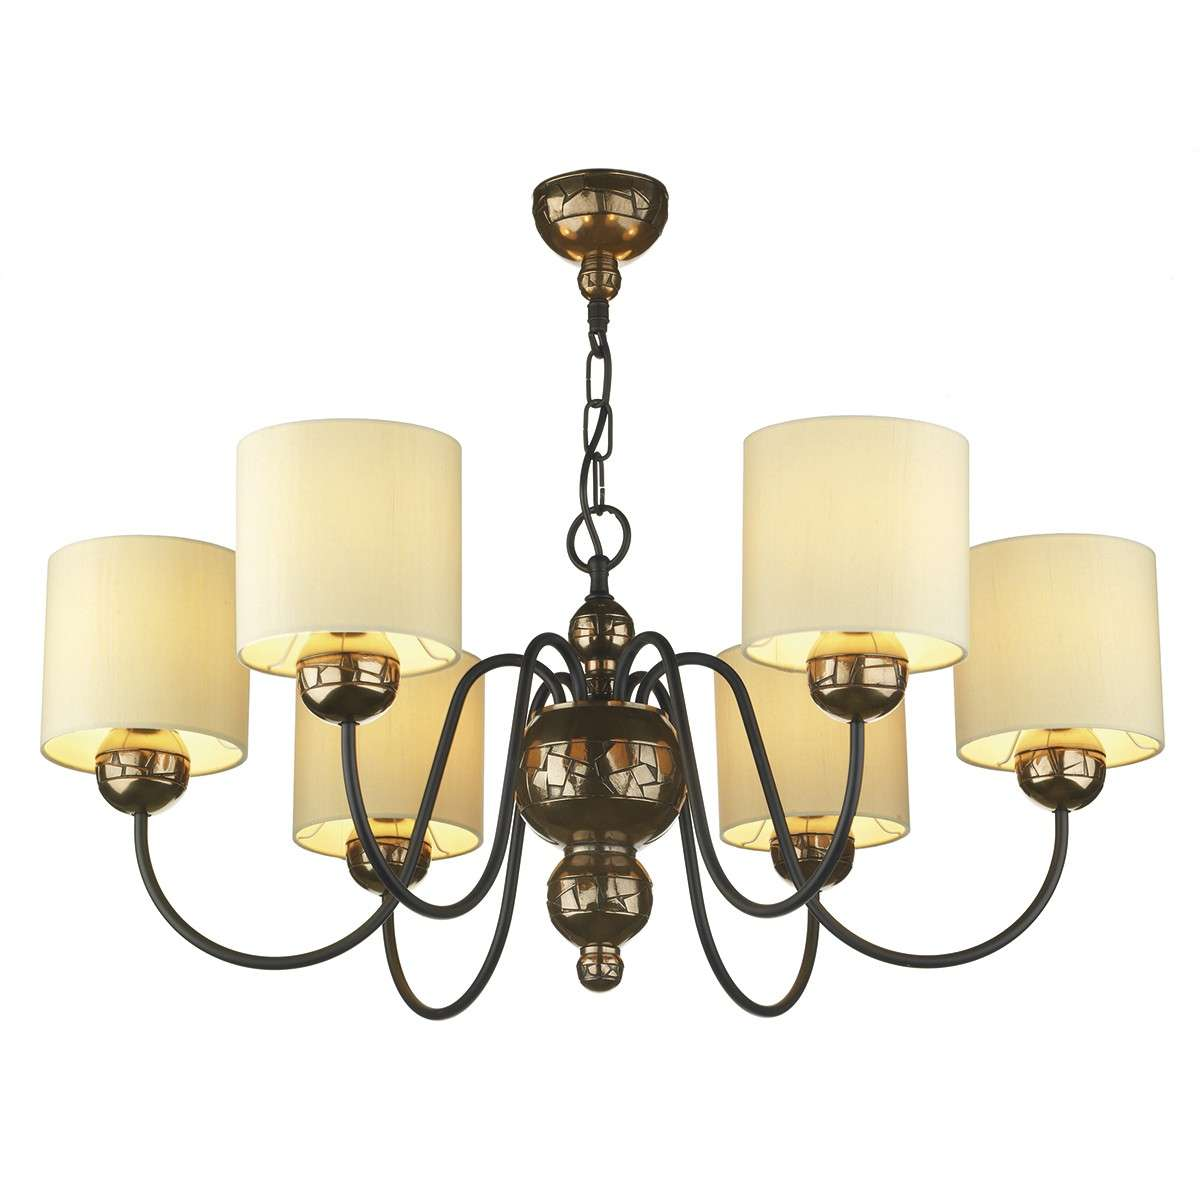 Garbo 6 Light Pendant Bronze complete with Cream Shades